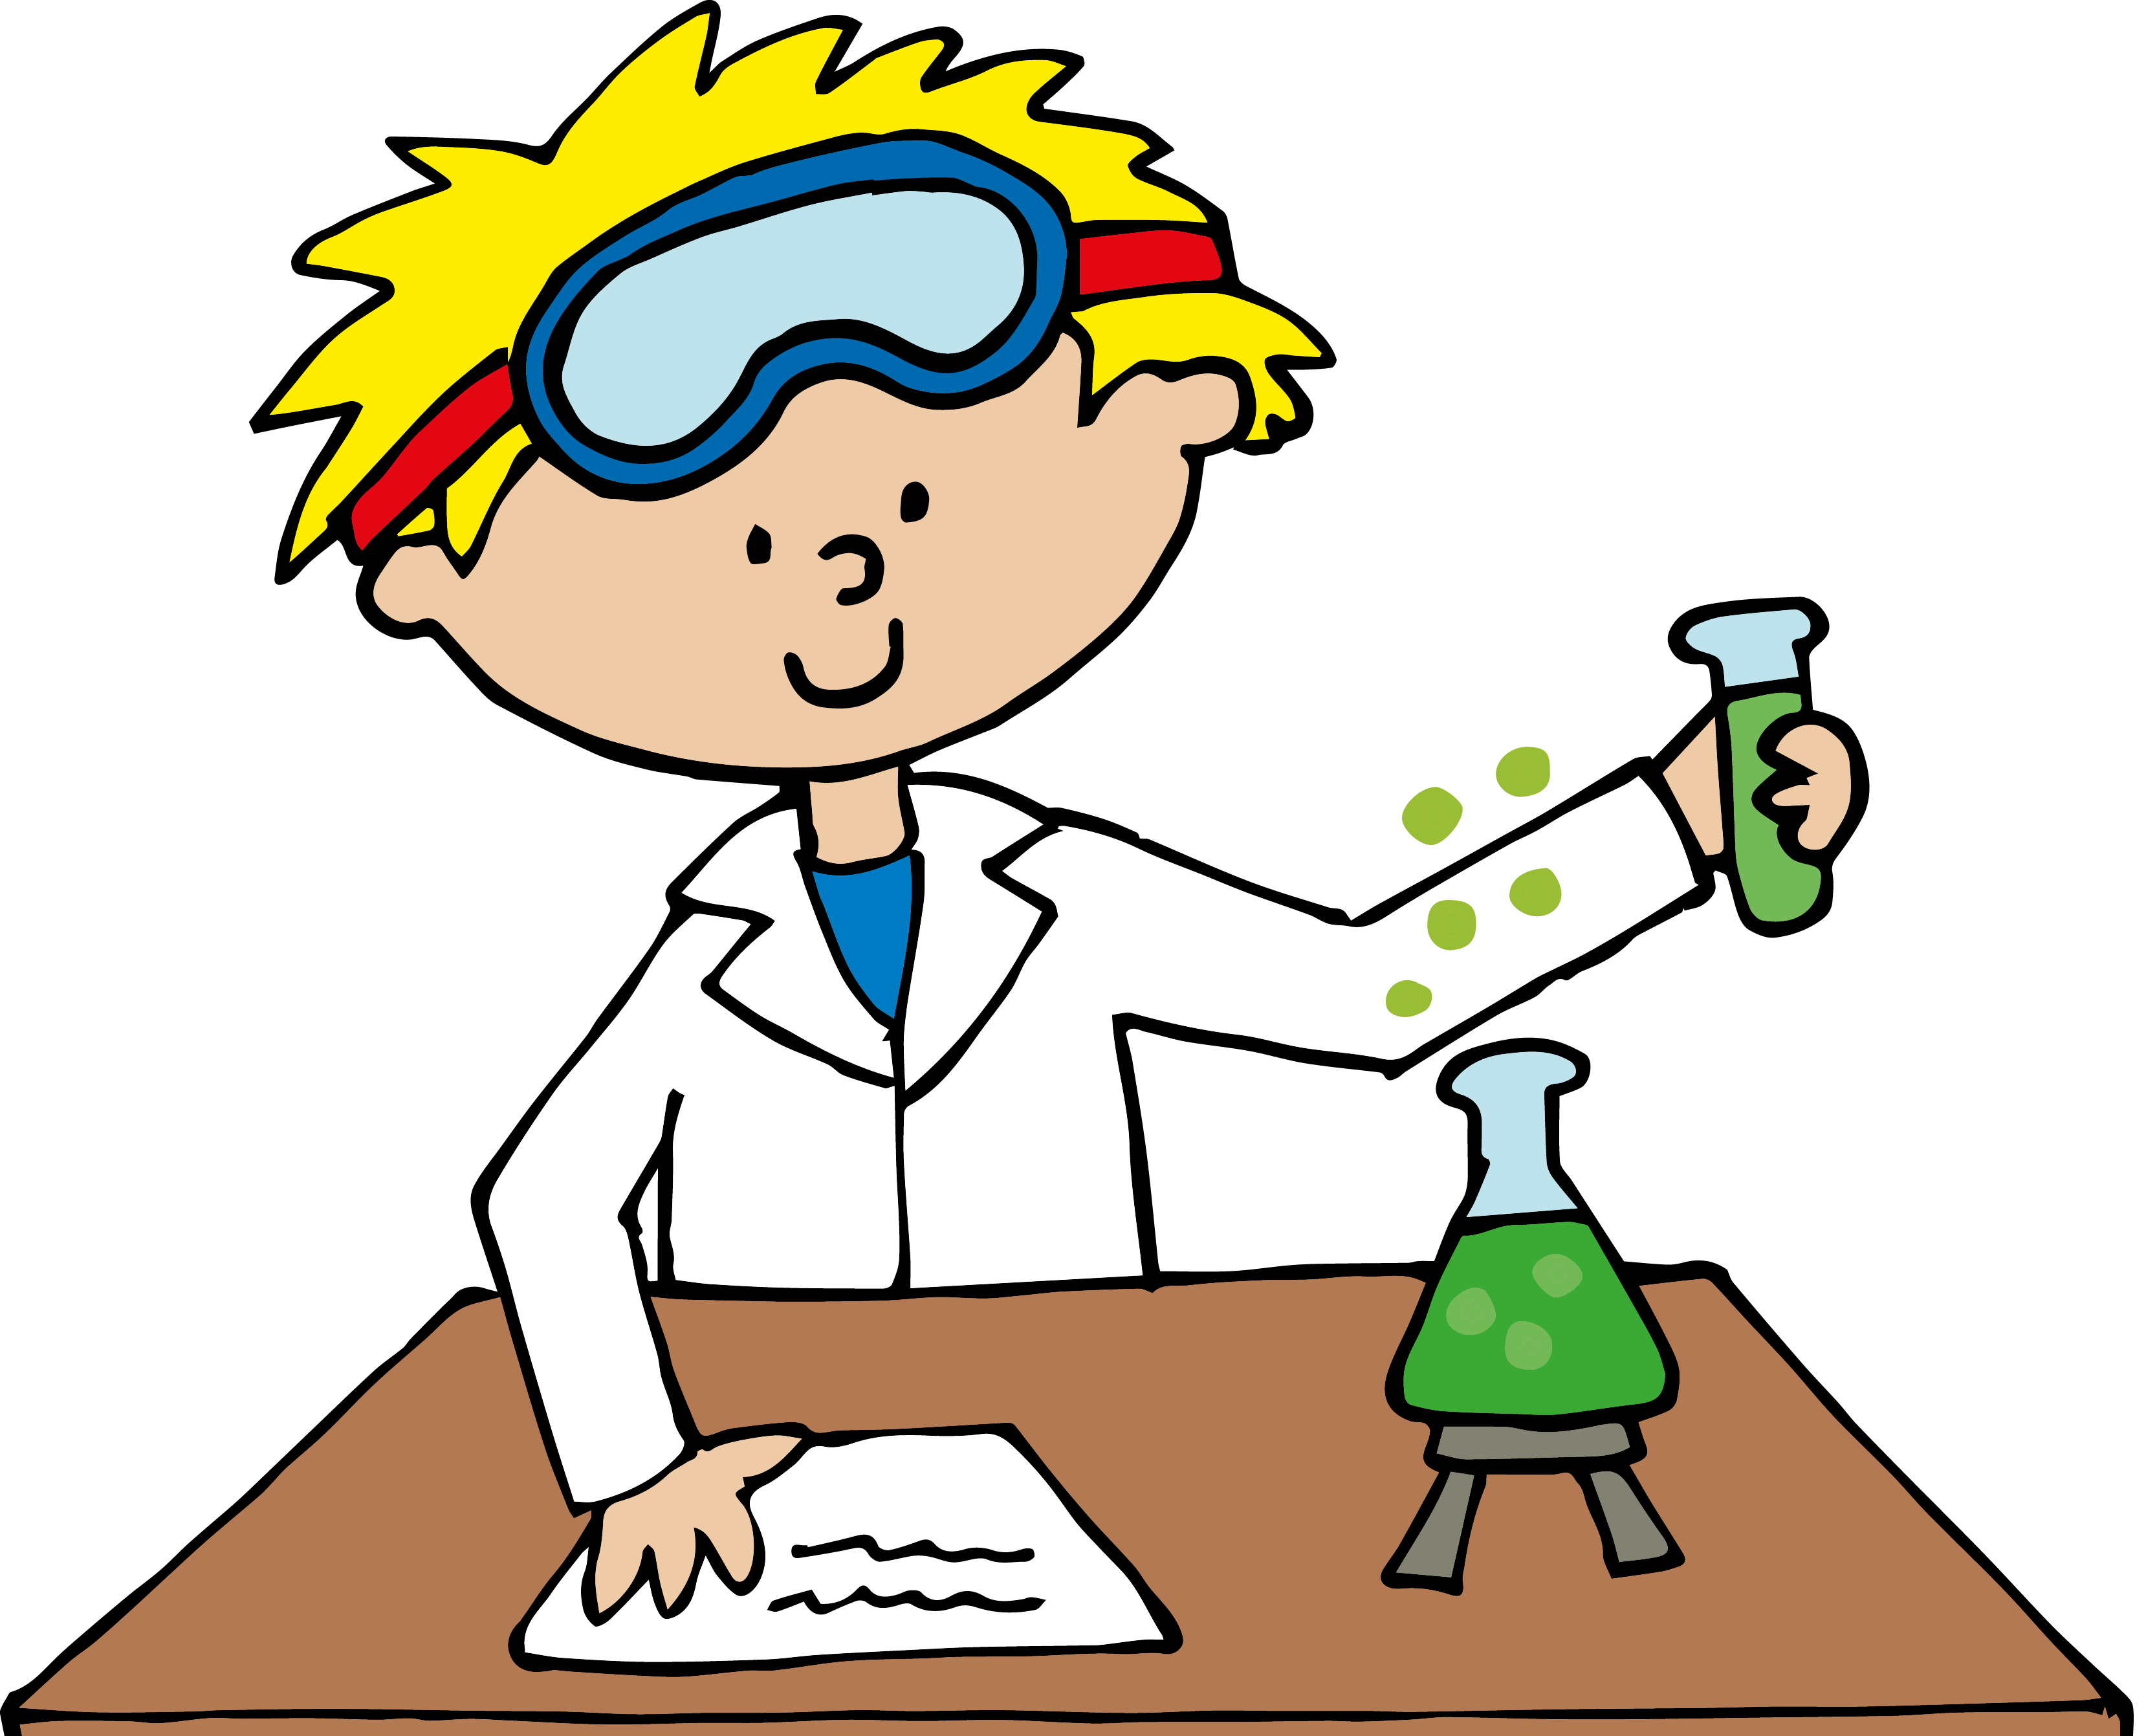 Scientist science project.